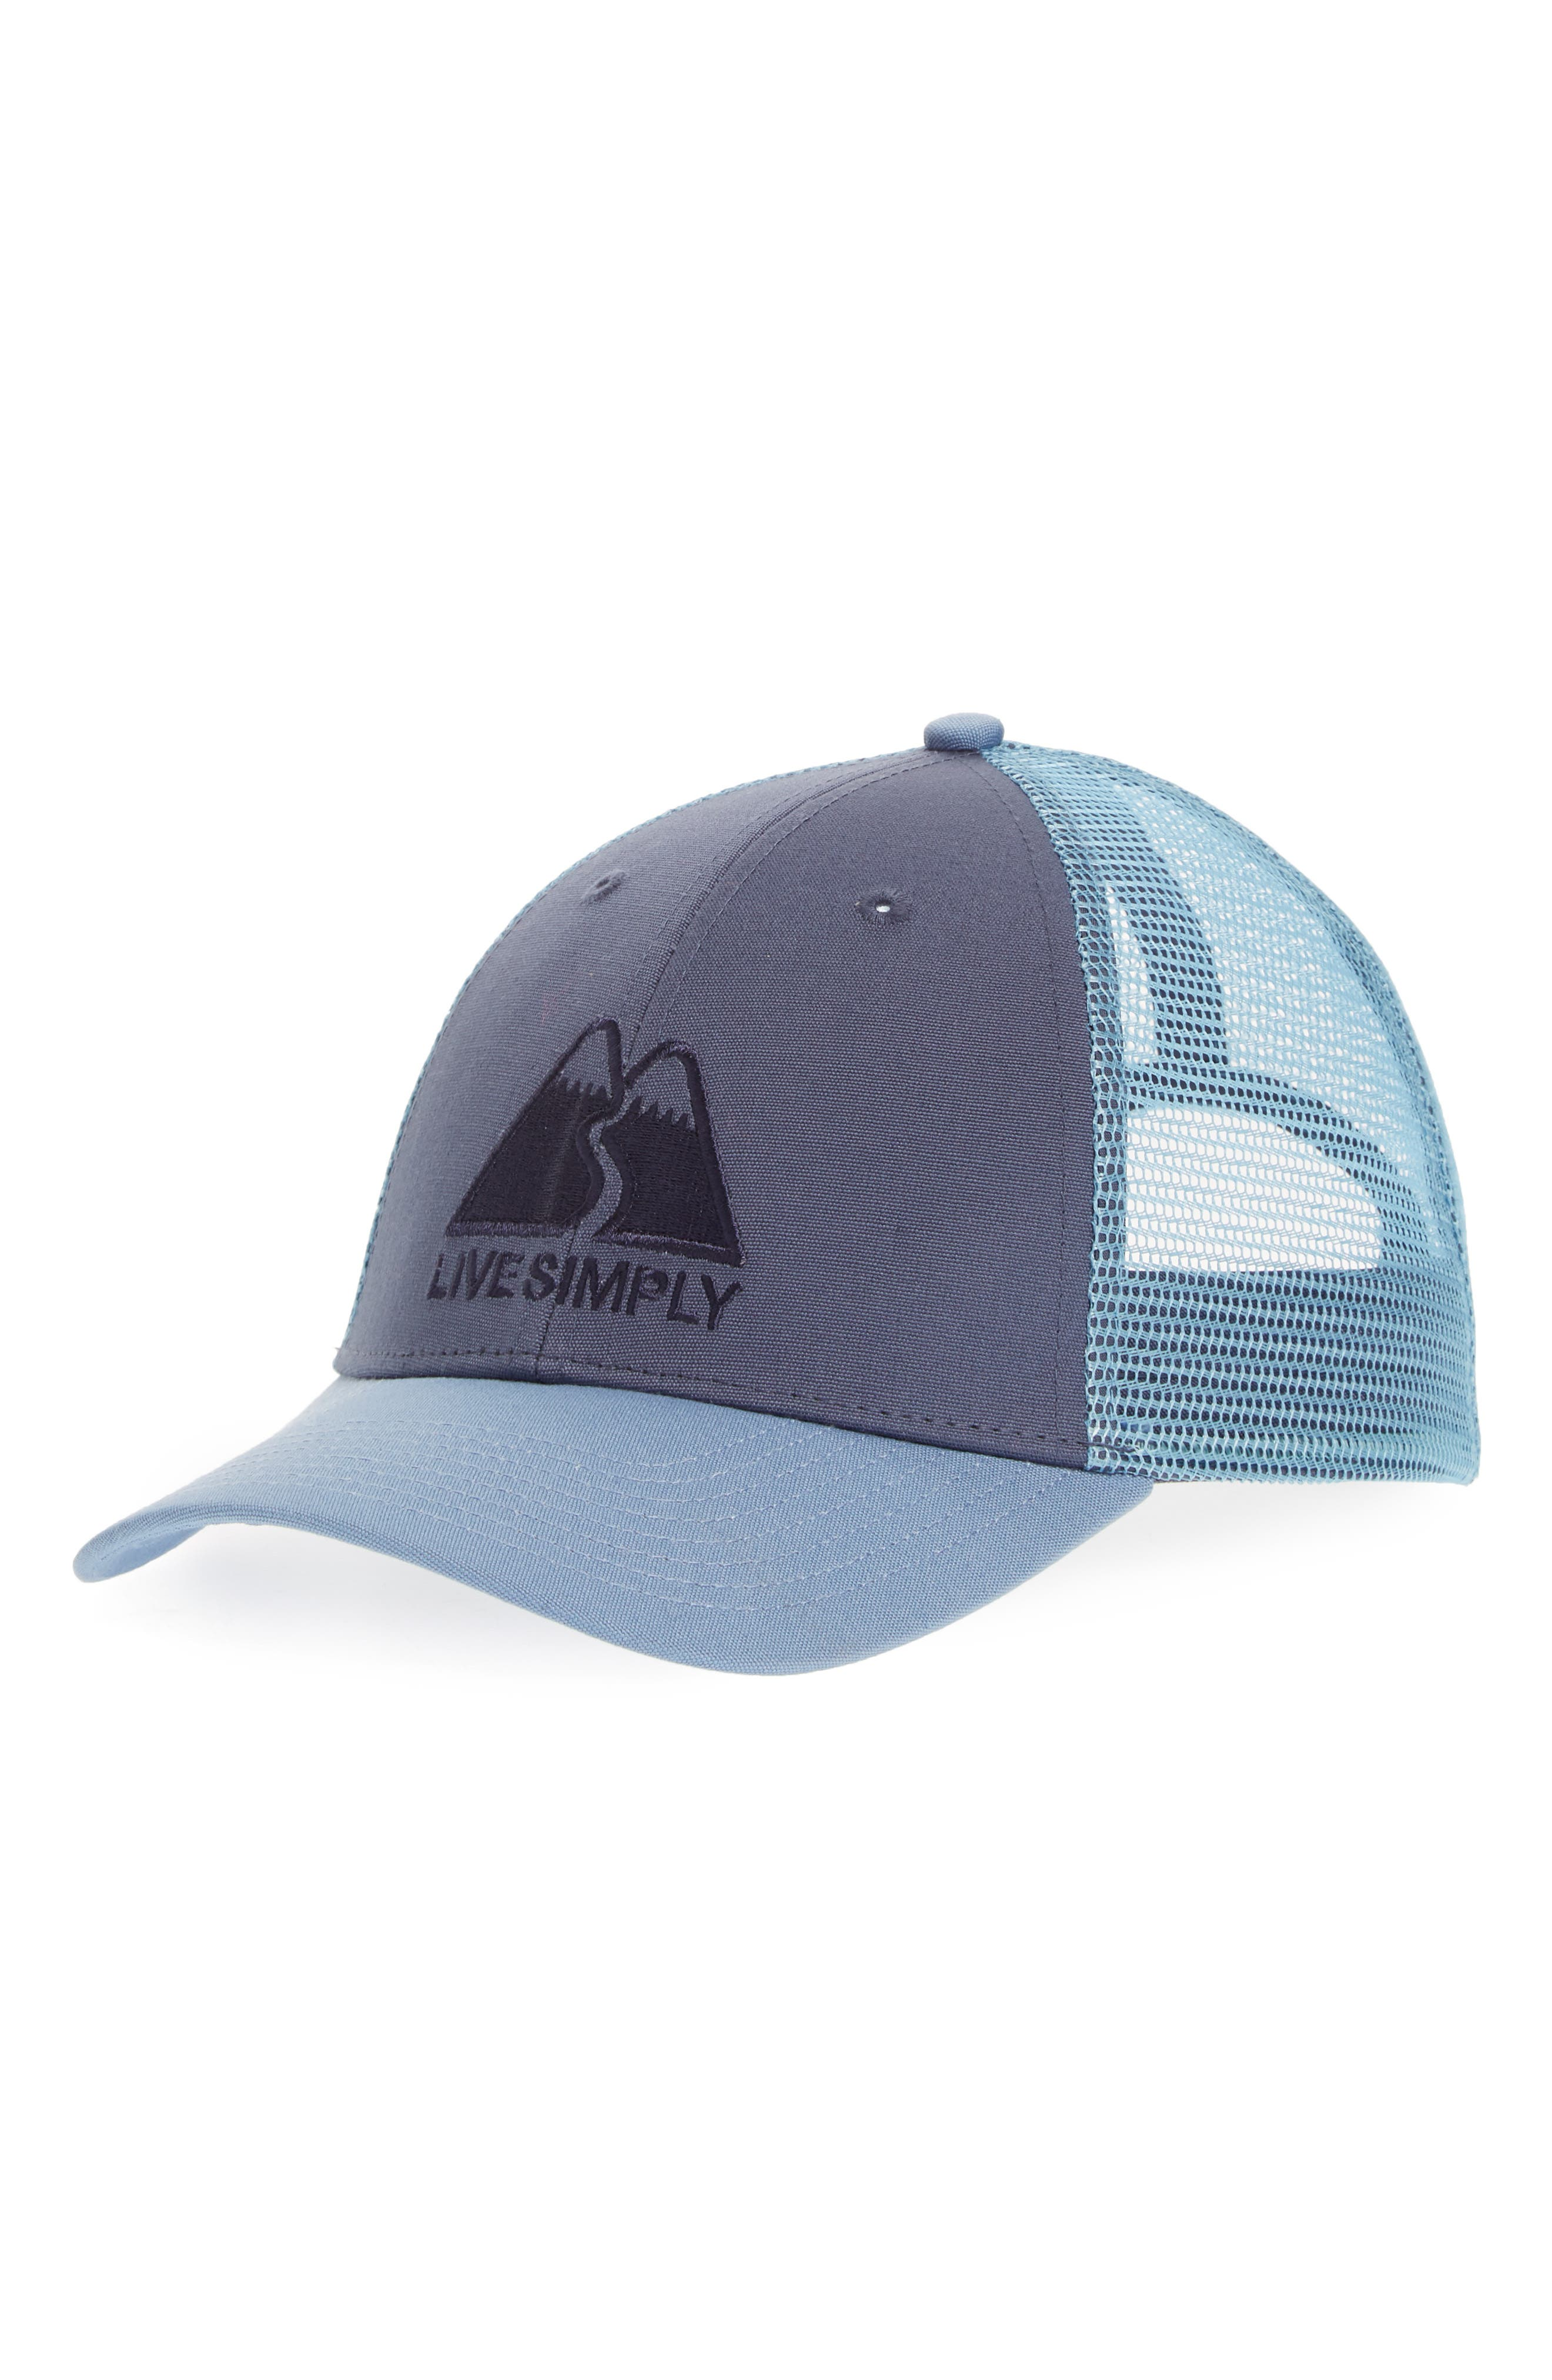 Live Simply Trucker Hat,                             Main thumbnail 1, color,                             400